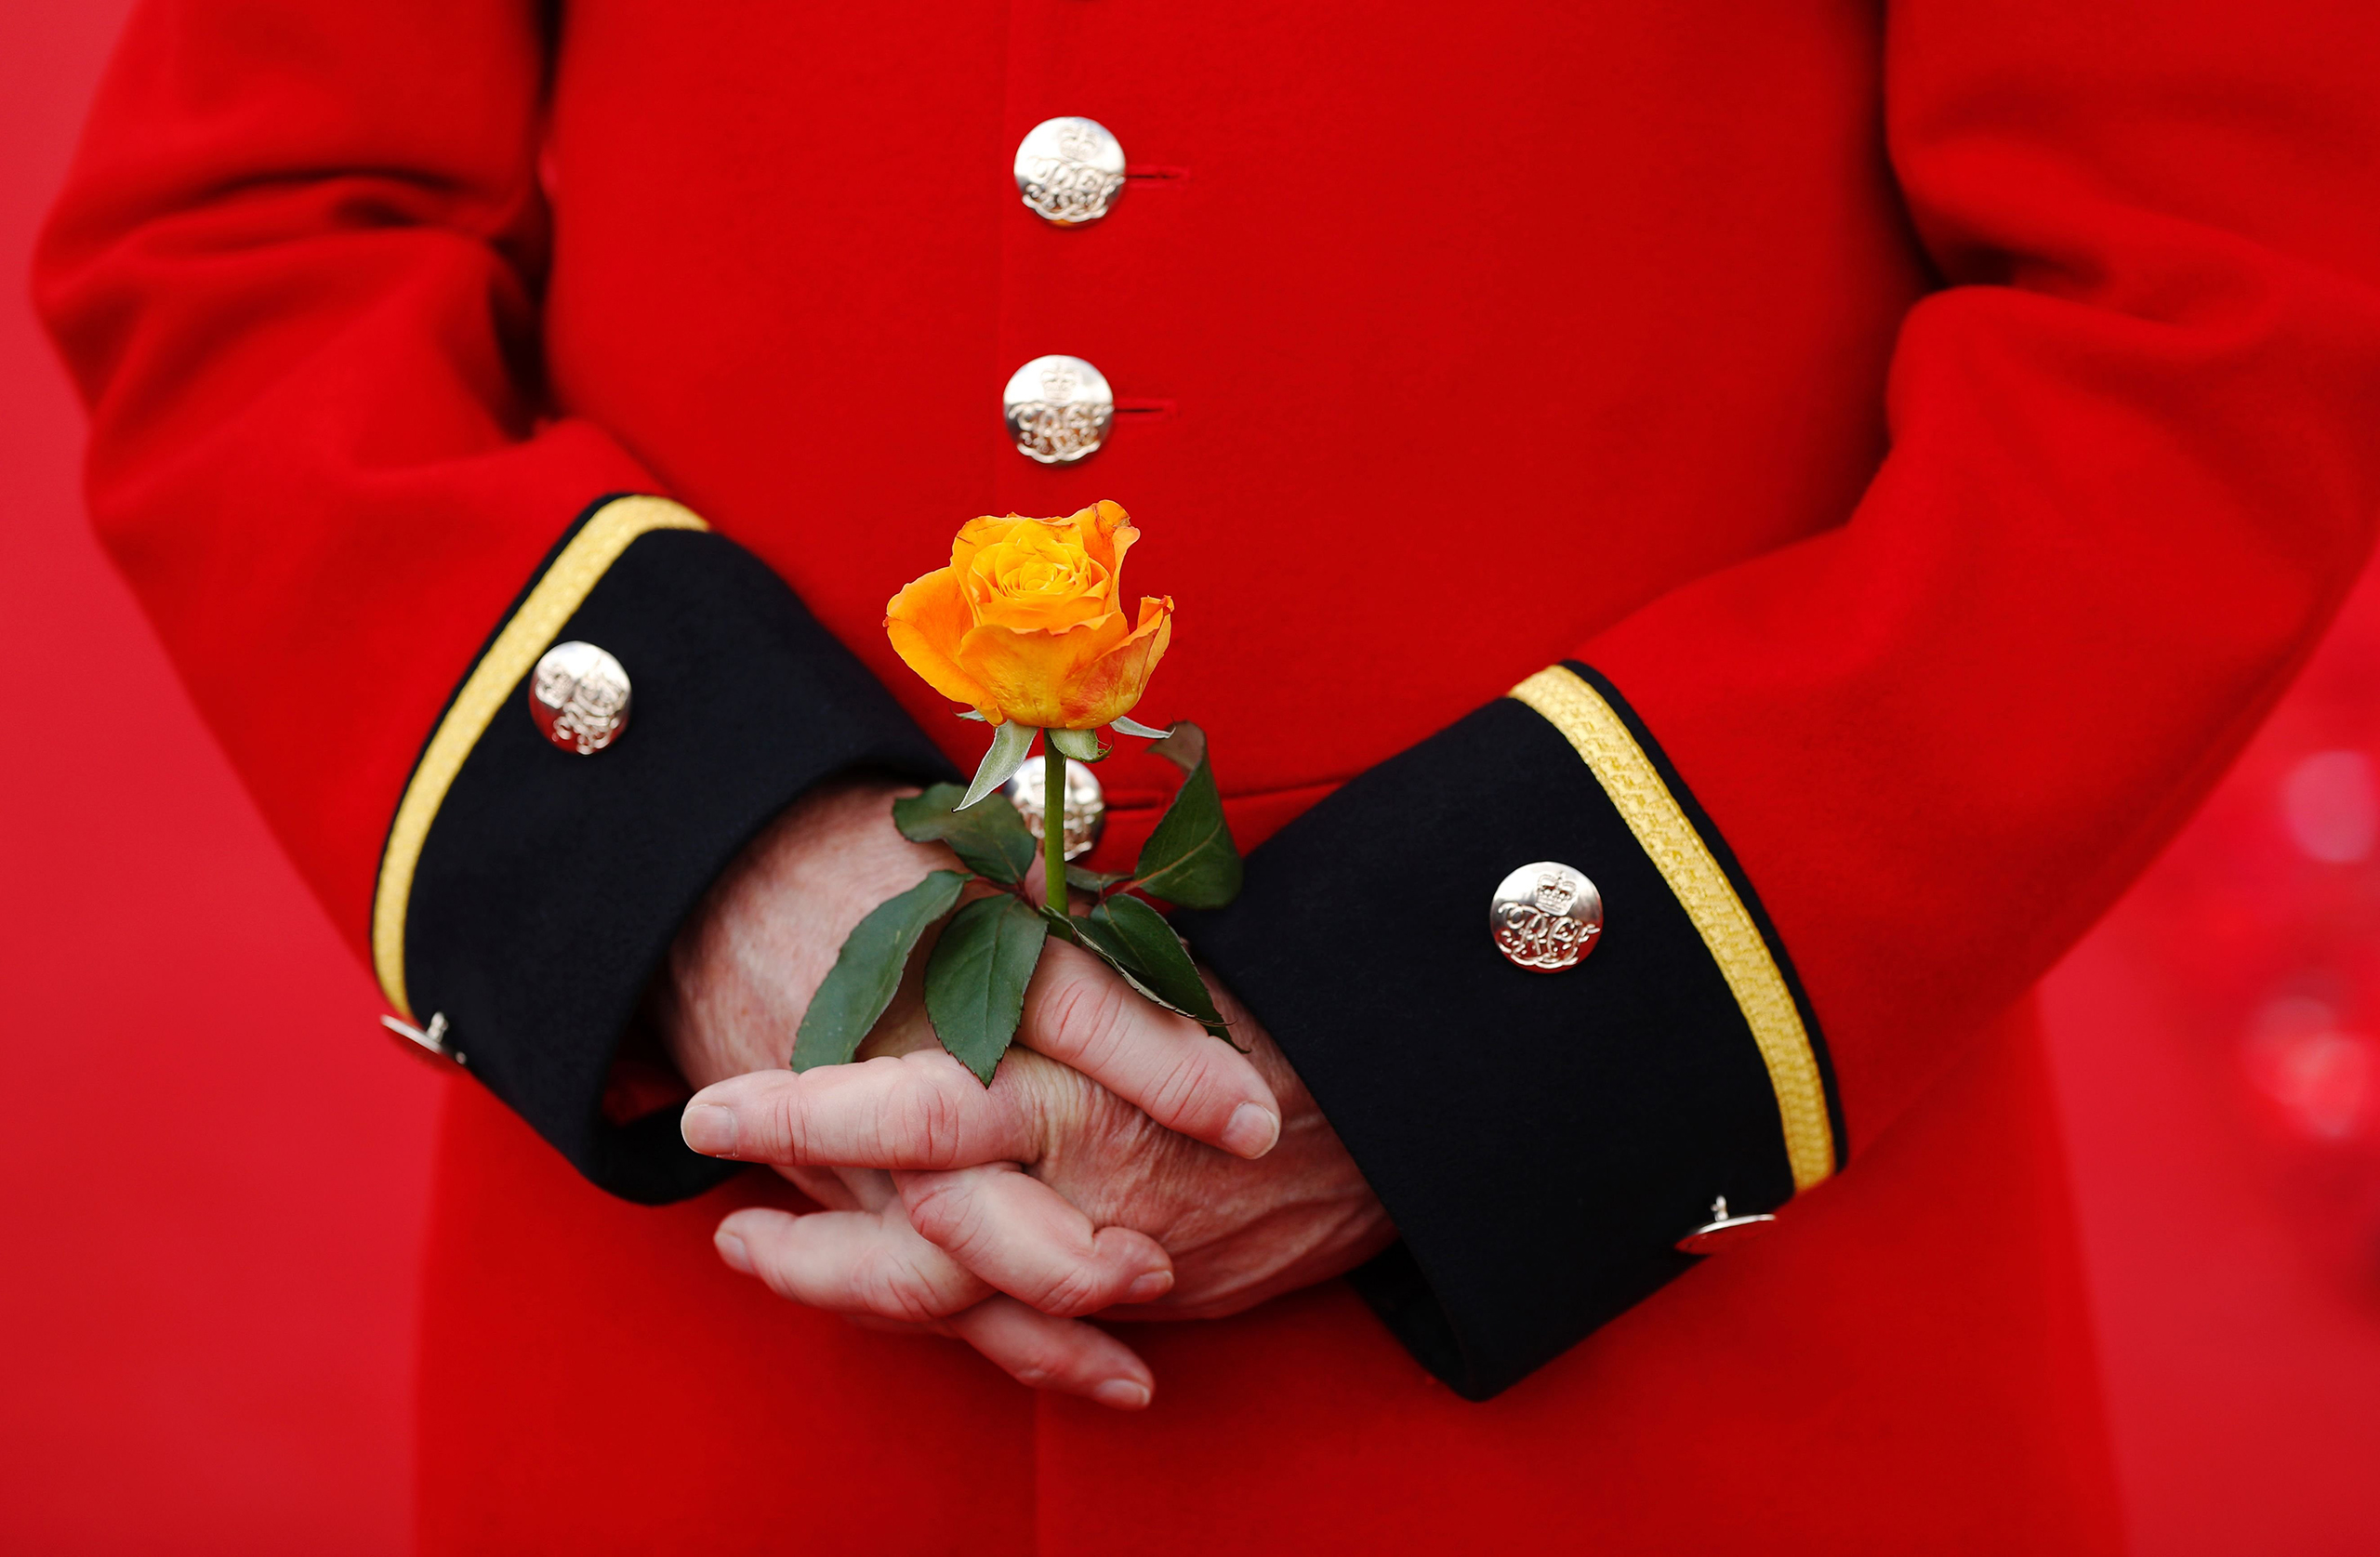 A Chelsea Pensioner holds a rose as he stands in the 5000 Poppies Garden at the Chelsea Flower Show in London on May 23, 2016.